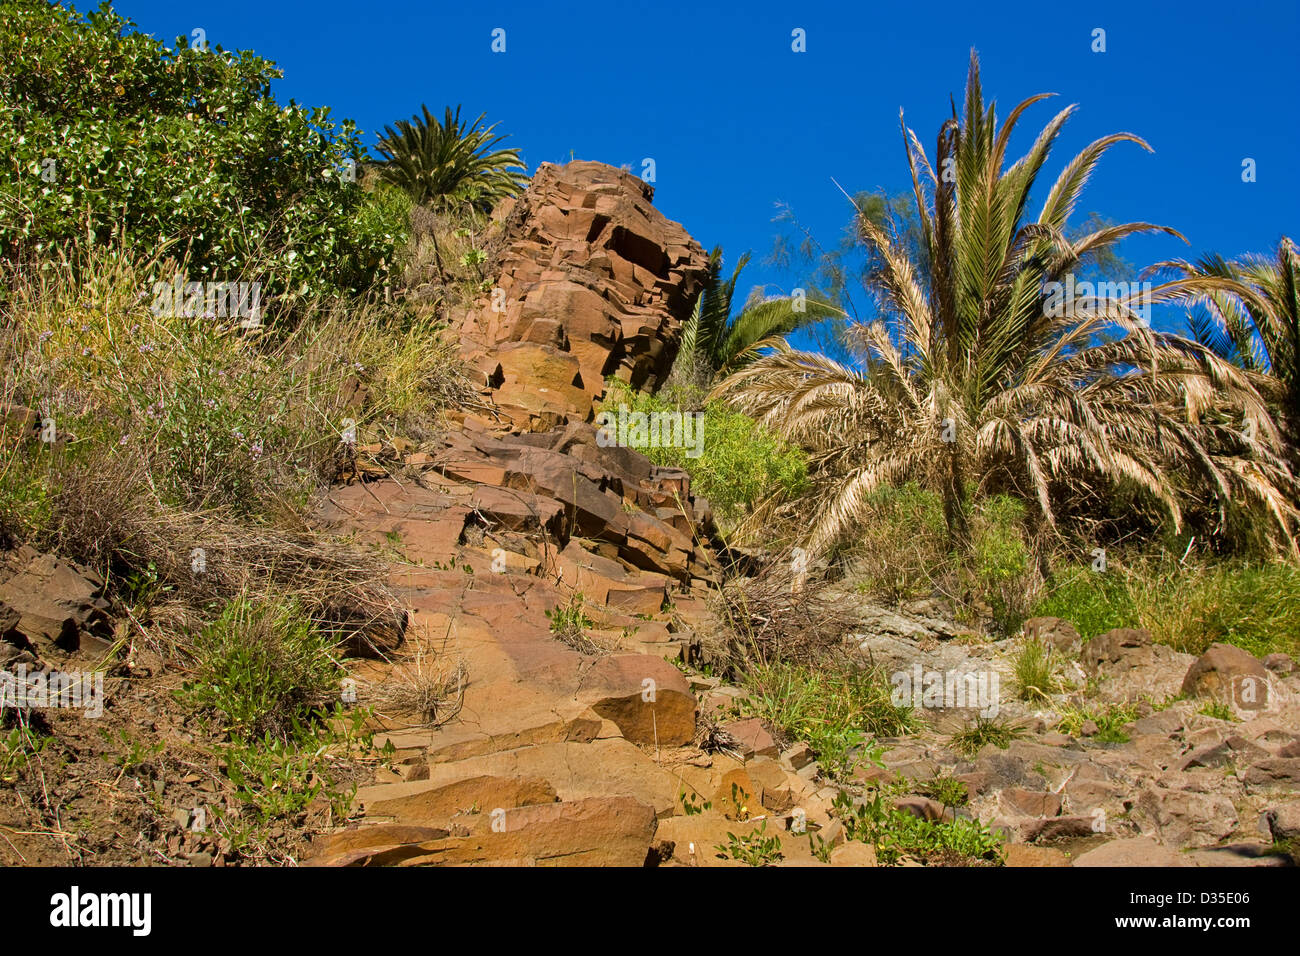 Dike in Tenerife - Stock Image